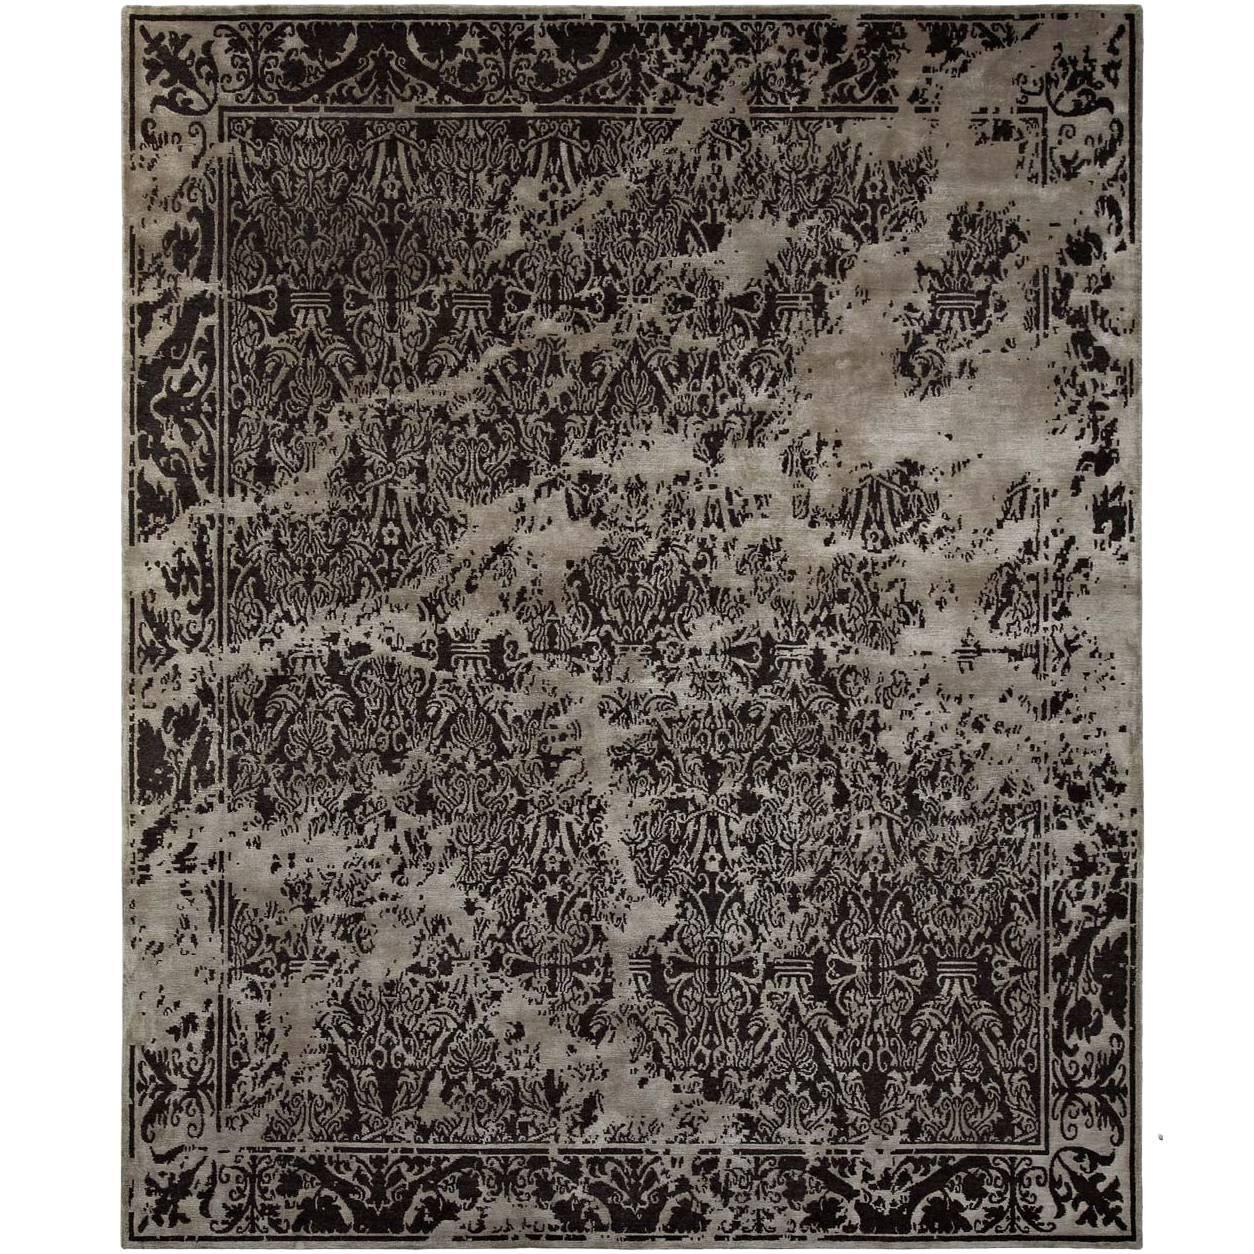 Alcaraz Sky From Erased Classic Carpet Collection By Jan Kath At 1stdibs